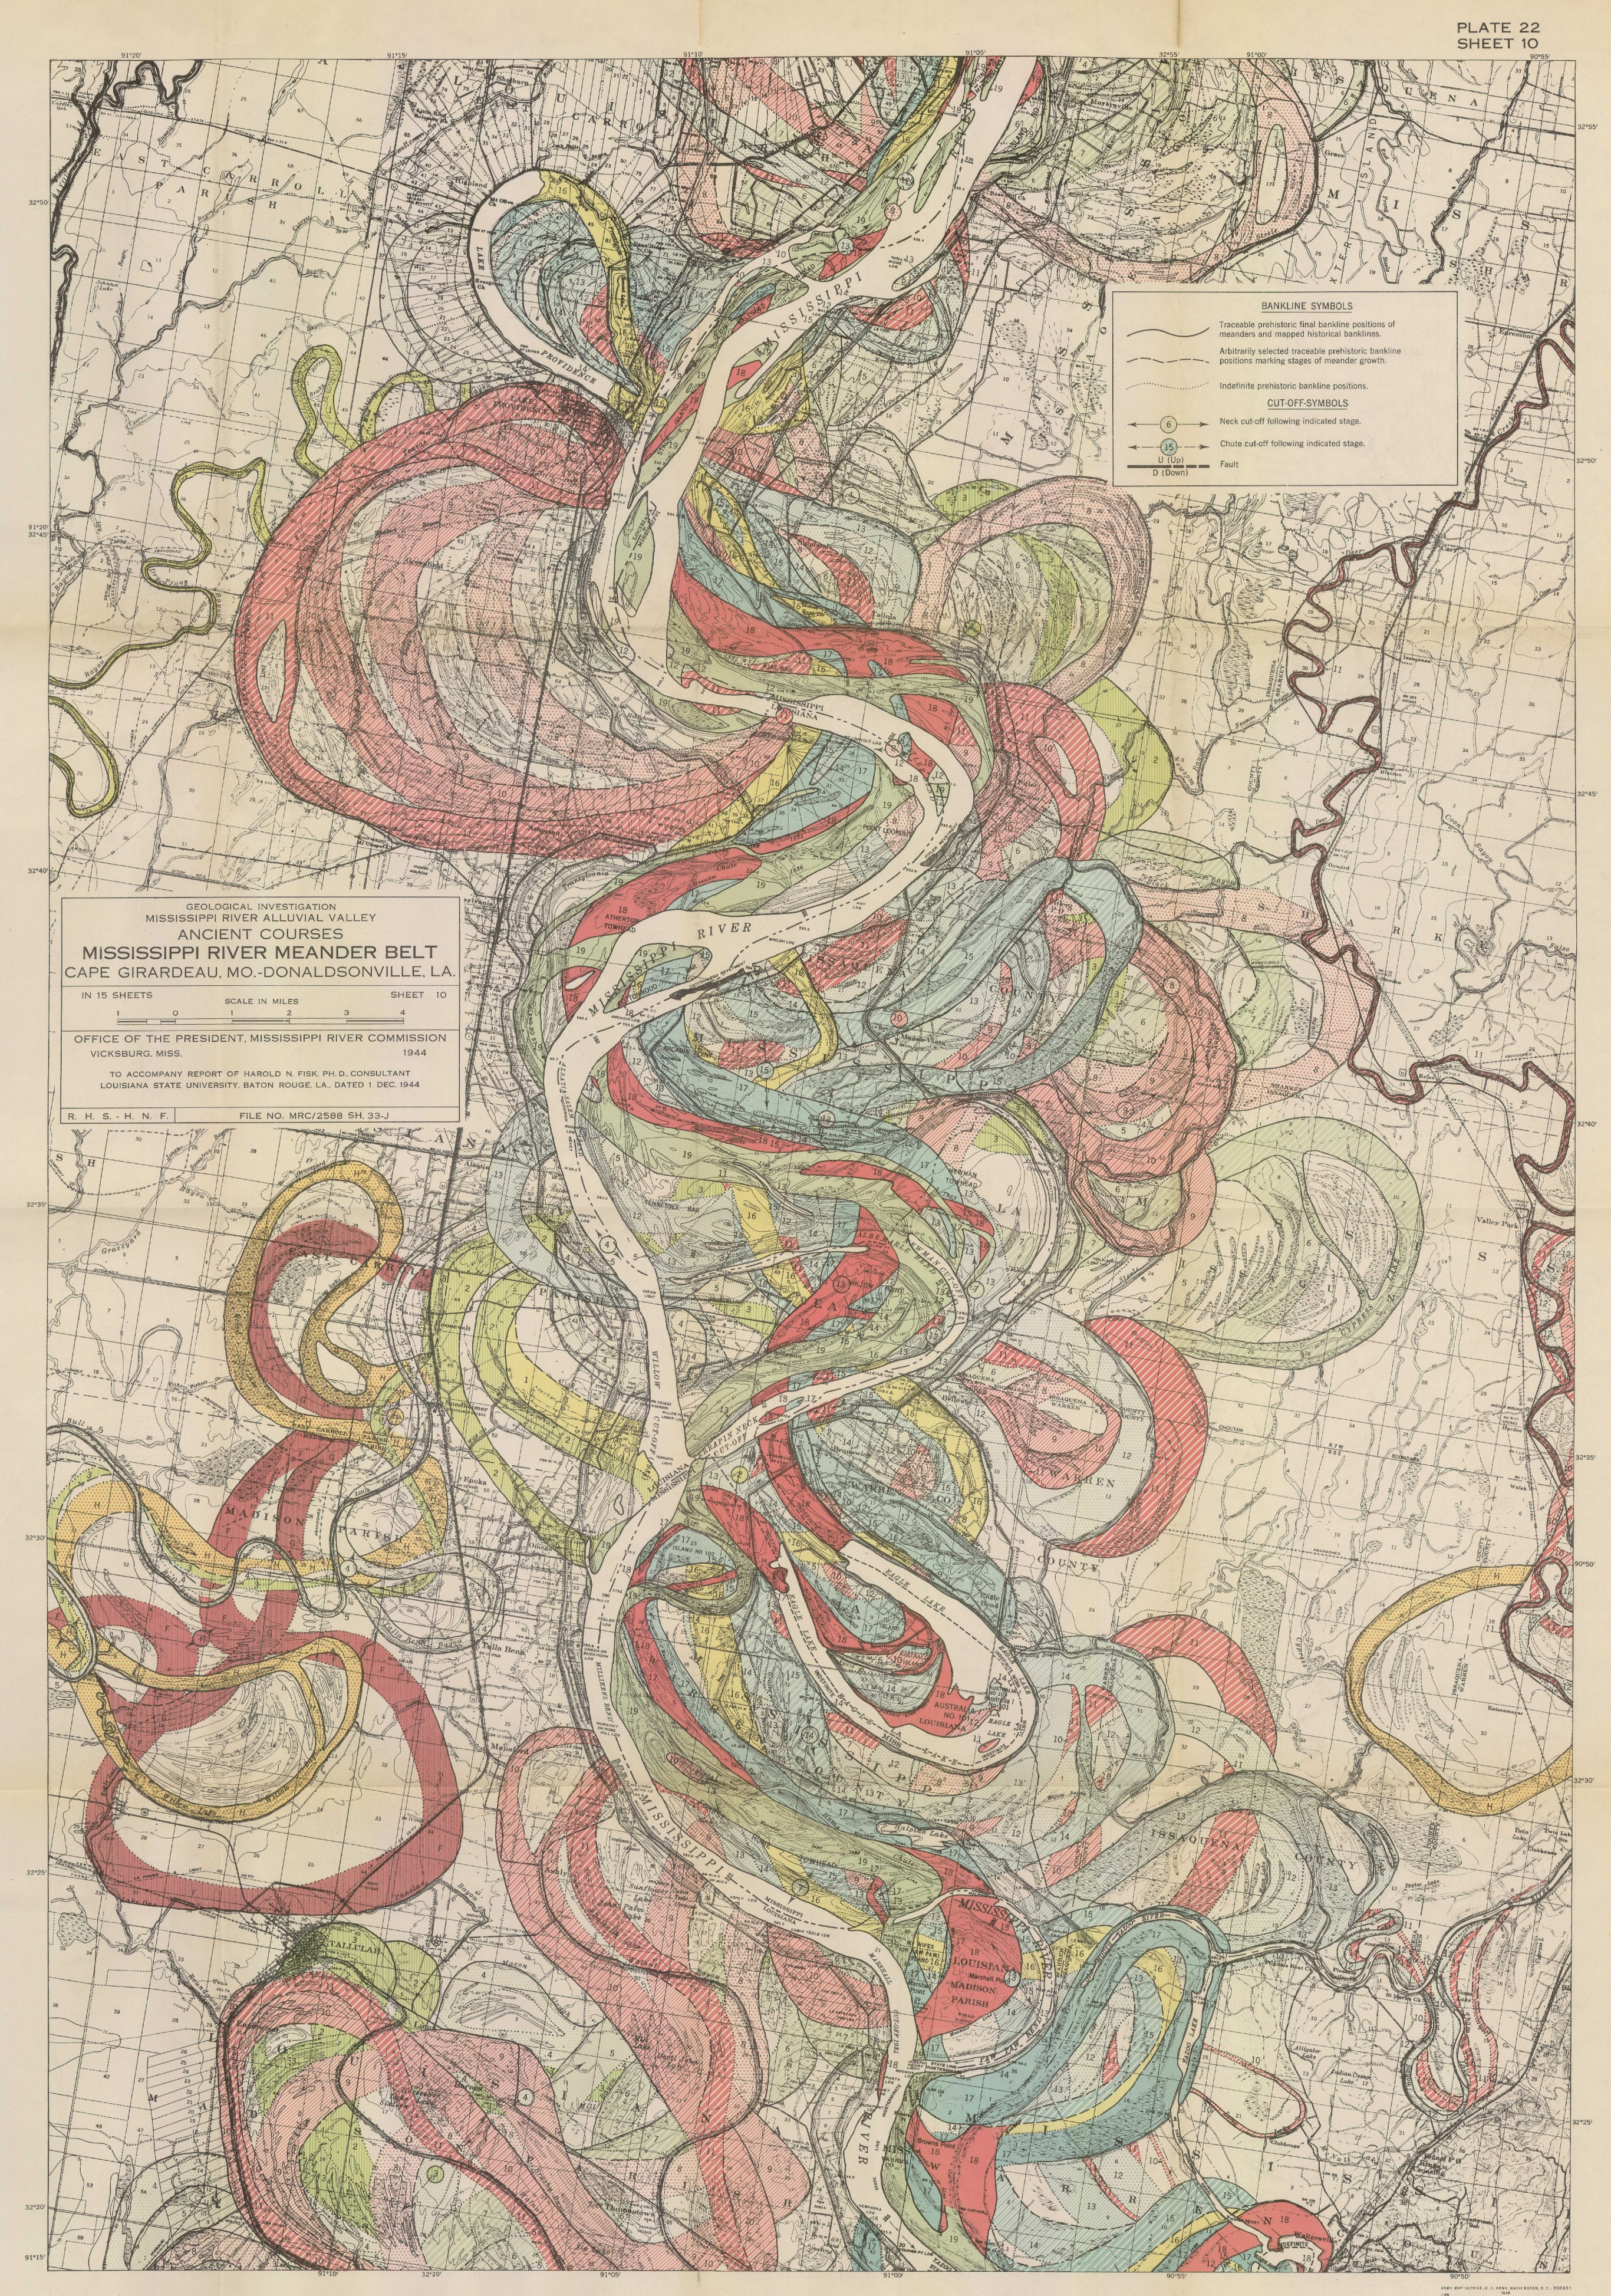 Radicalcartography - Map of the mississippi